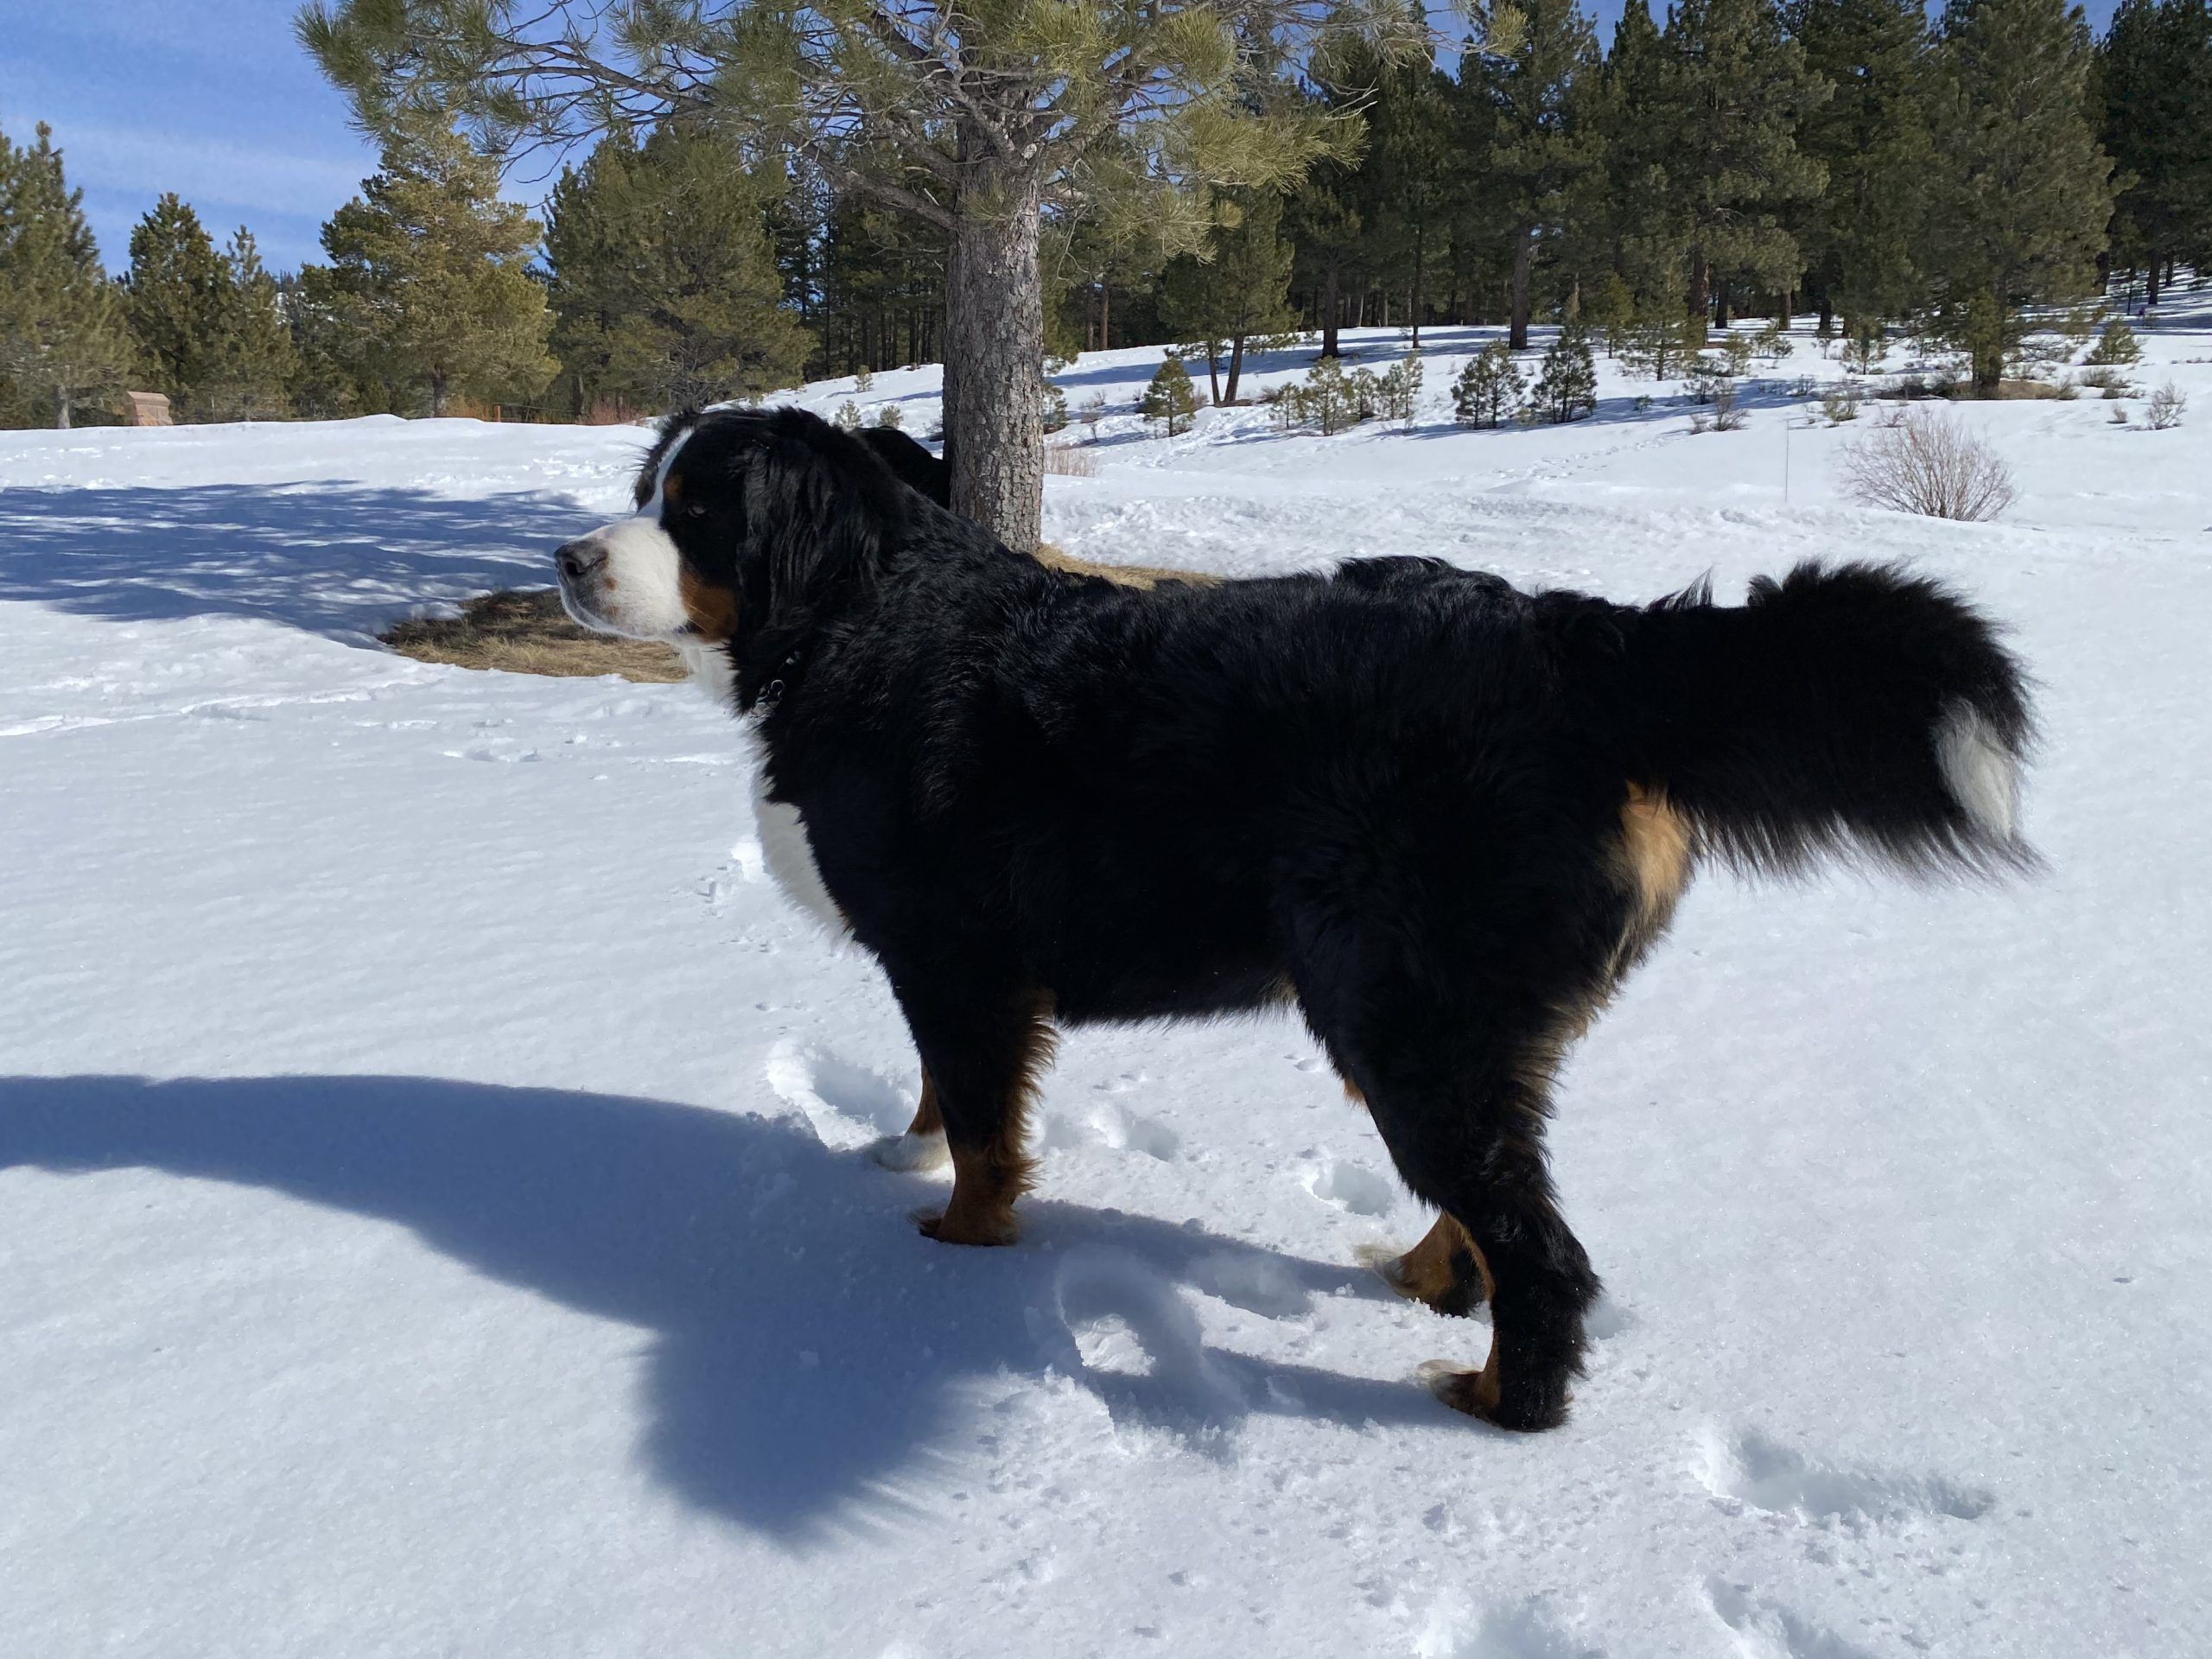 Lola-the-berner-int-the-snow-at-Northstar